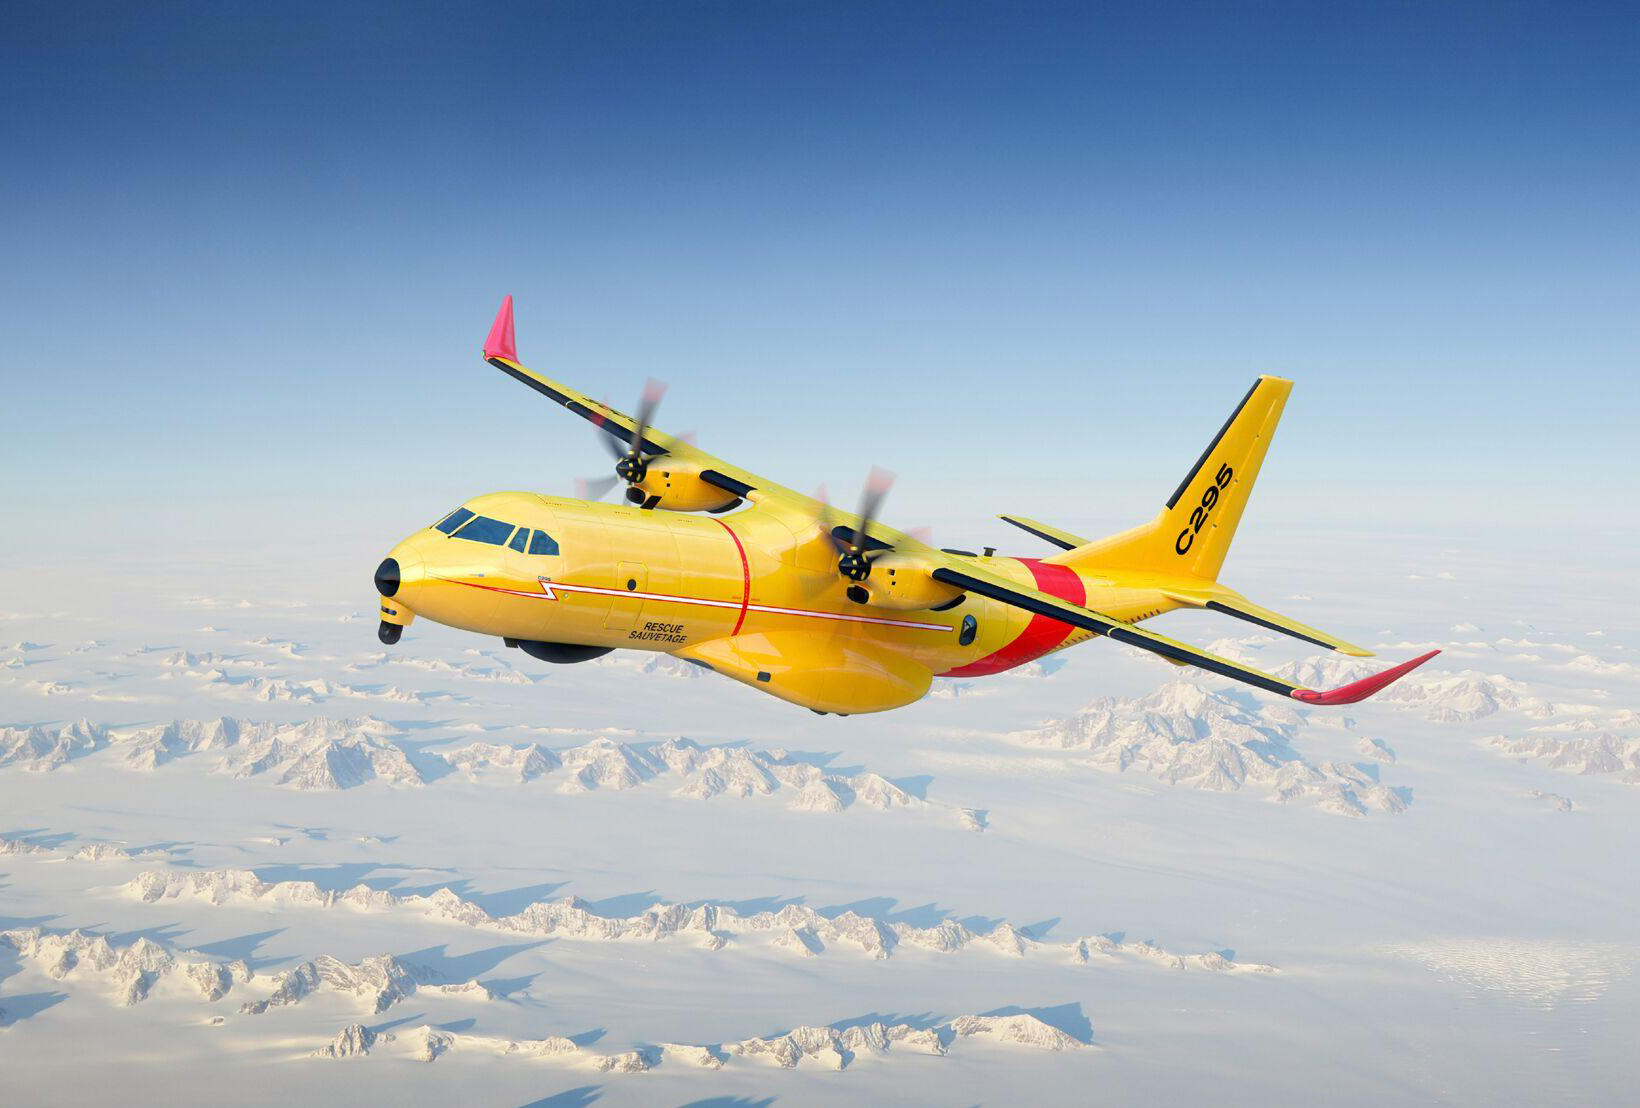 A large yellow aircraft flies over snow-covered terrain.